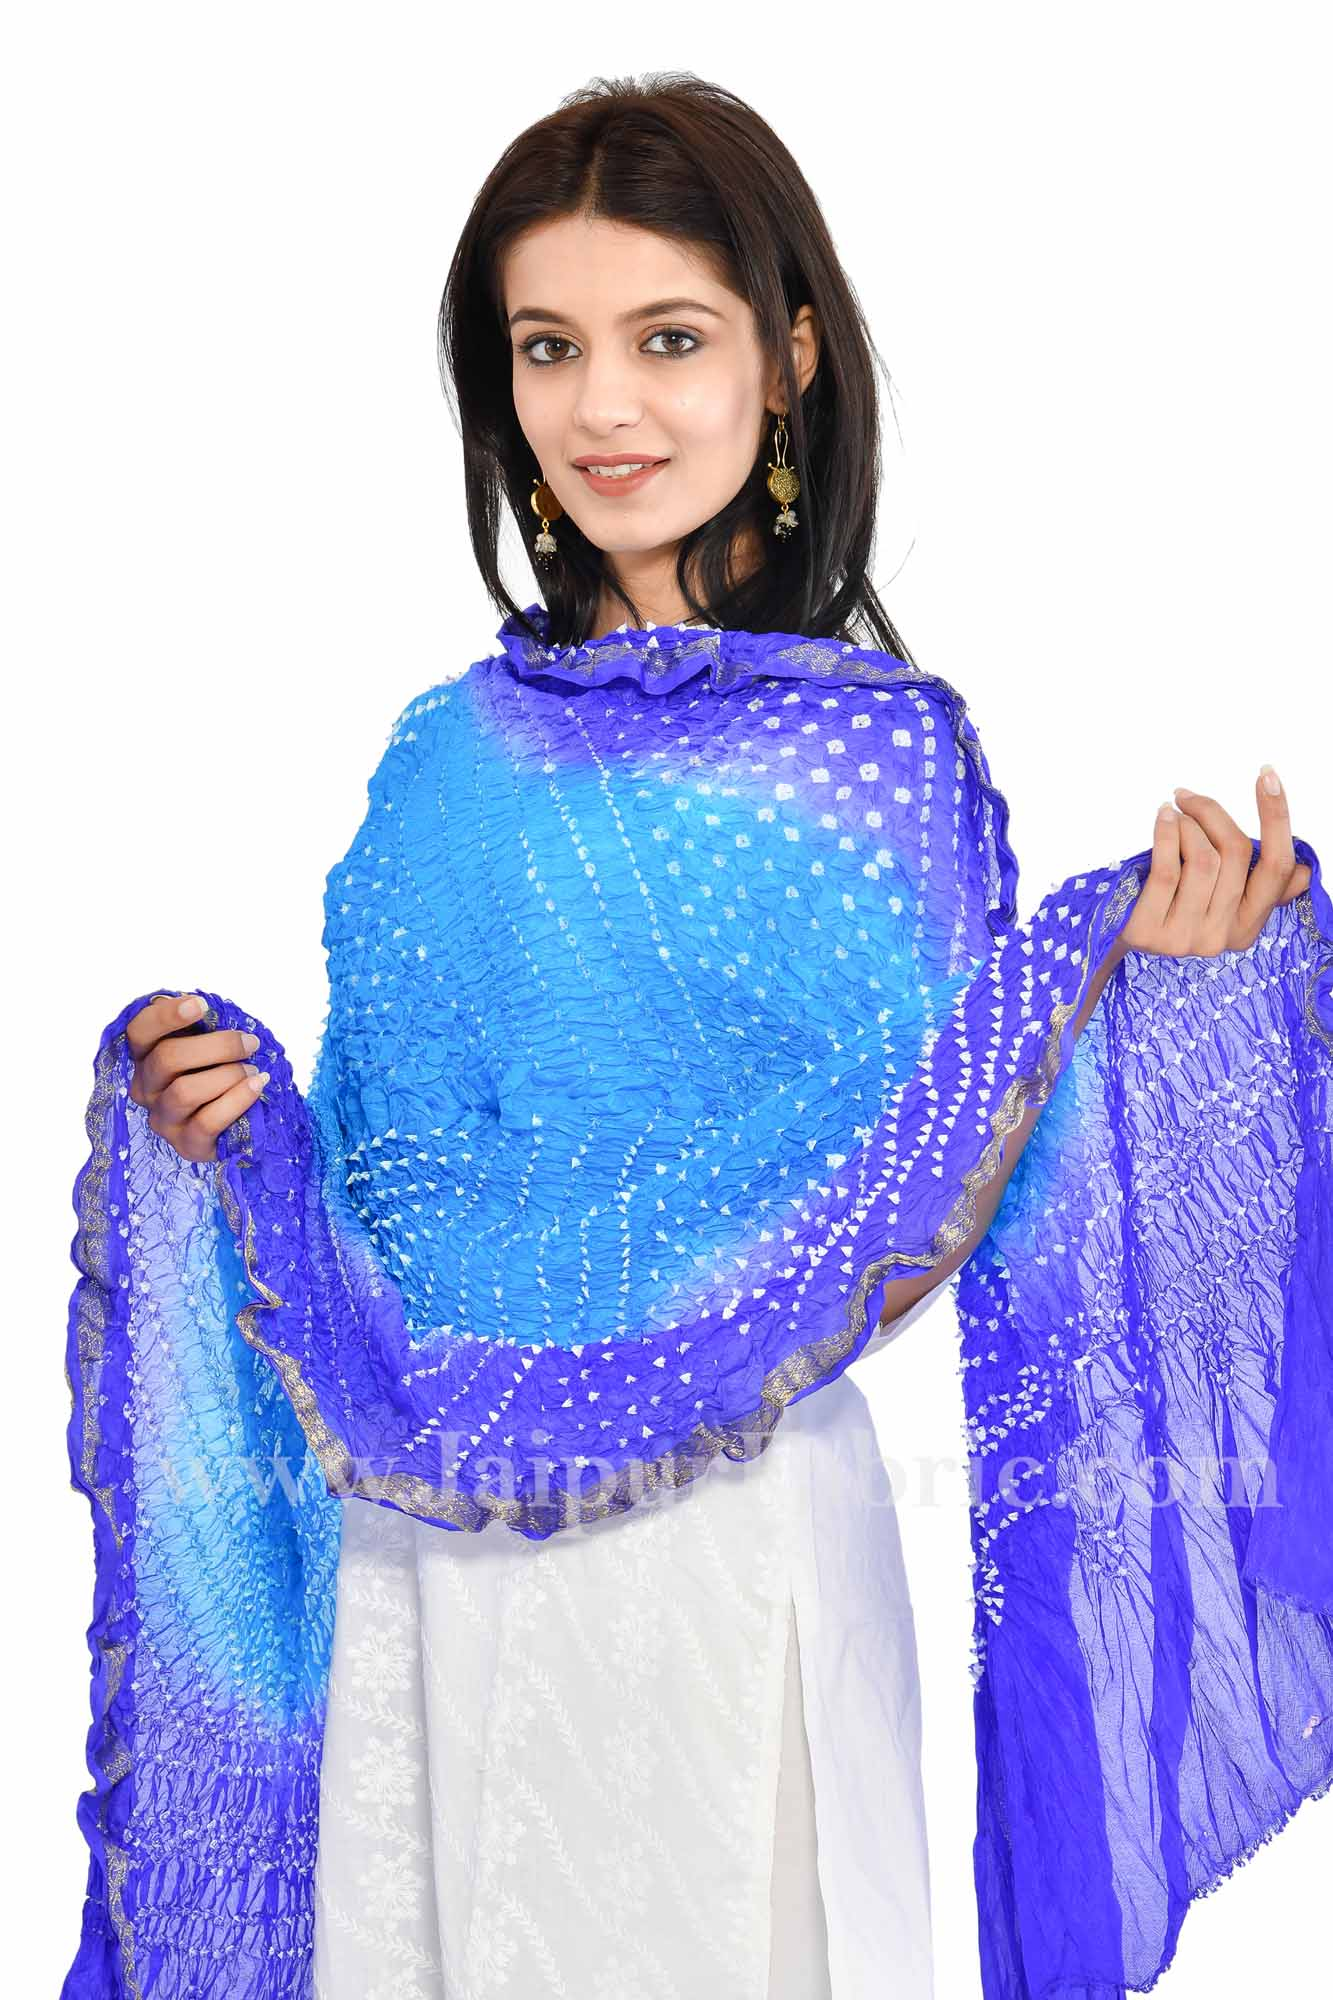 Zari Border Blue Colored Jaipuri Rajasthani Art Silk Bandhni Bandhej Heavy Dupatta Chunni